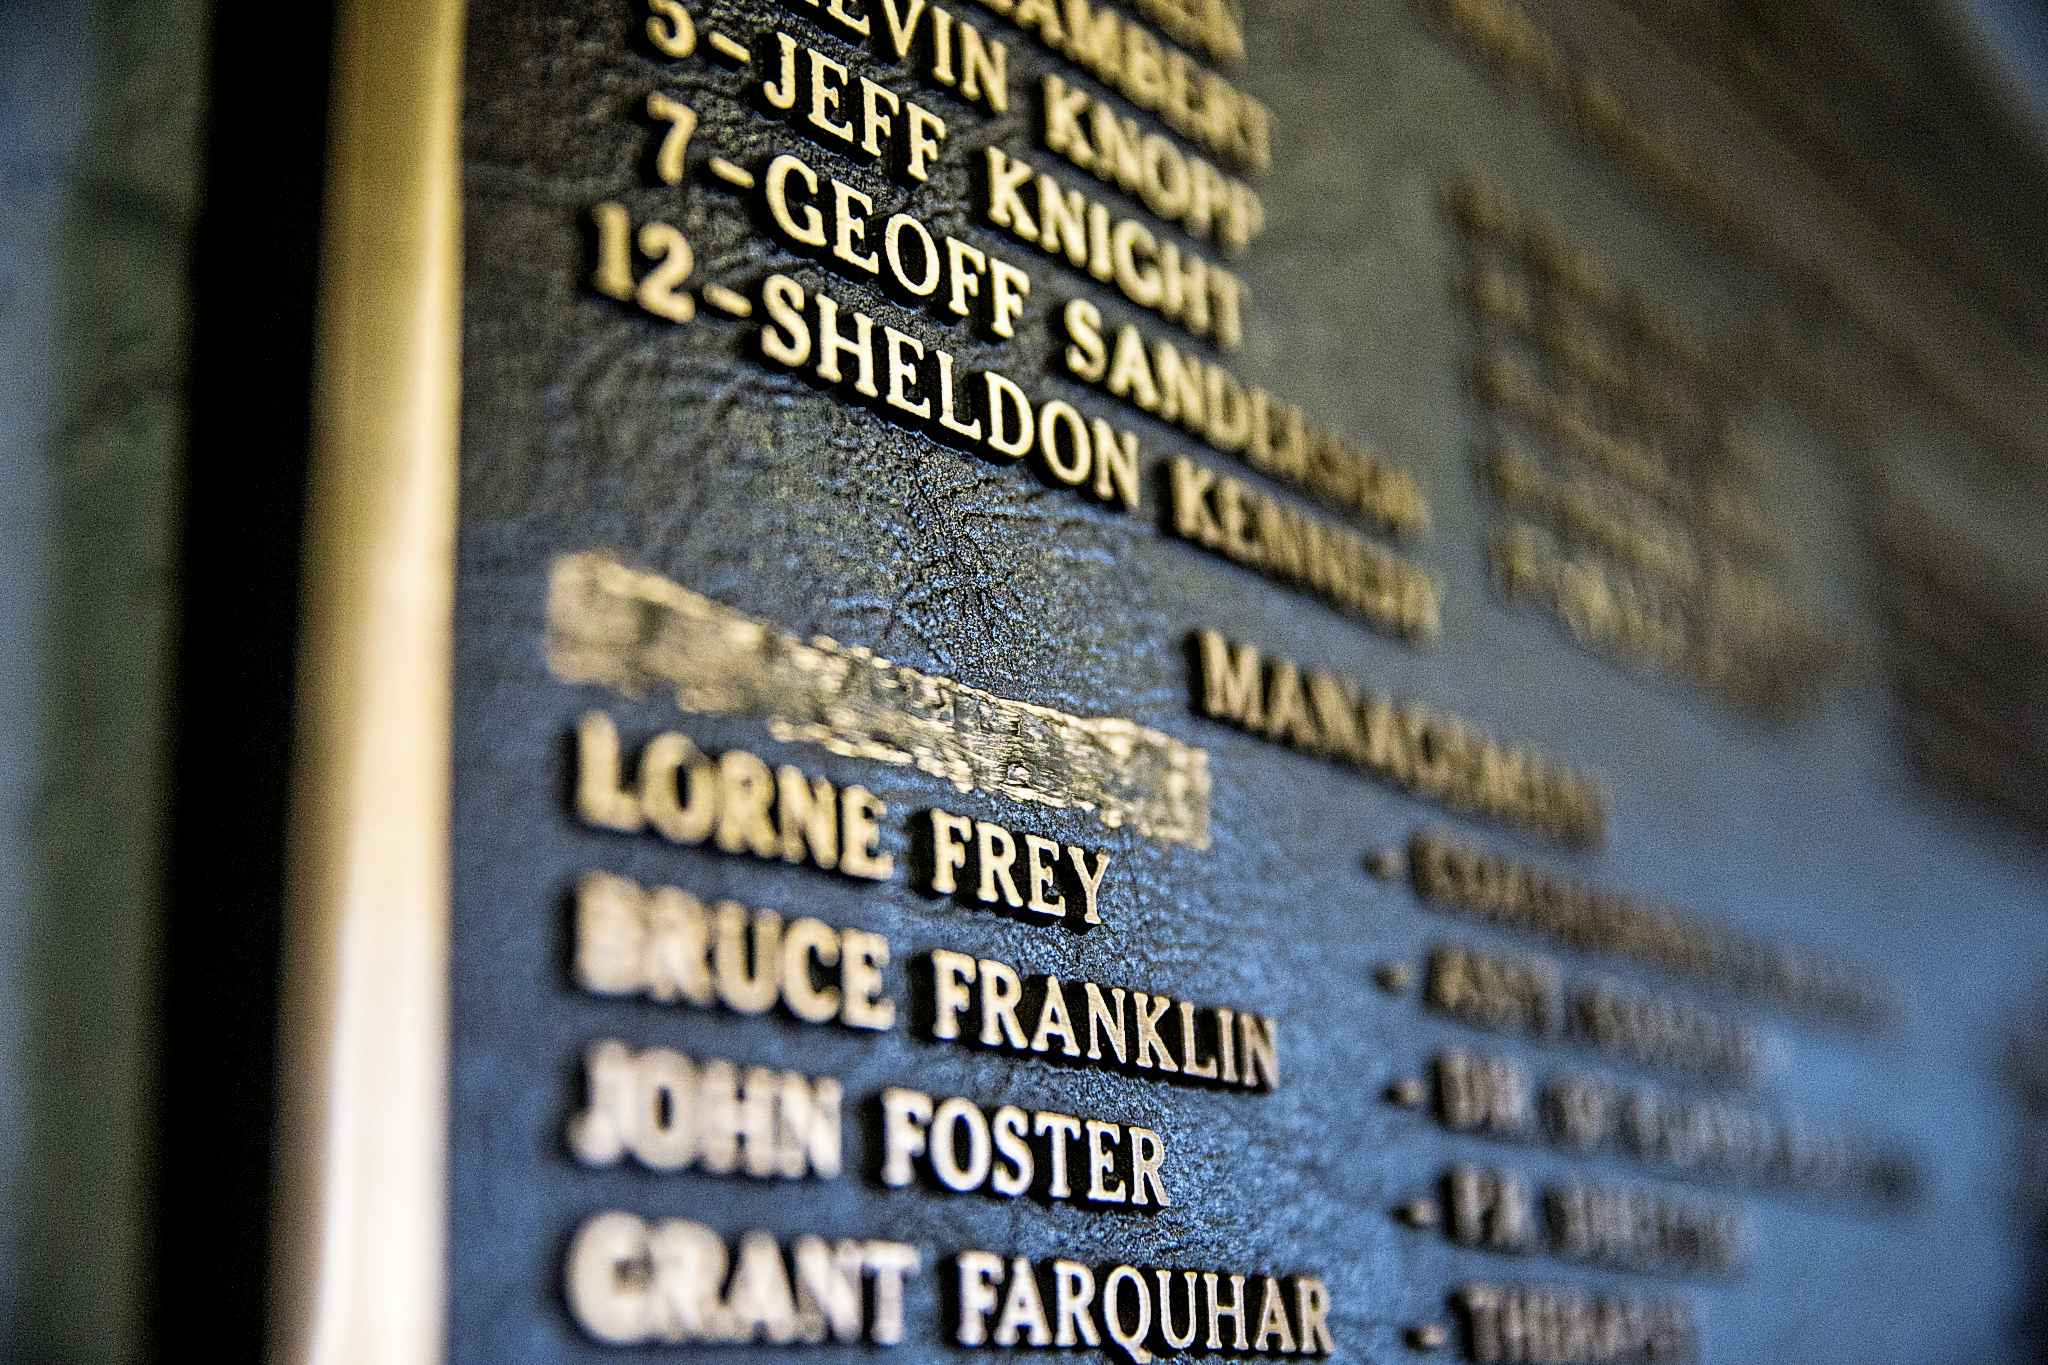 Graham James' name has been scratched off a Swift Current arena plaque commemorating the Broncos' 1989 Memorial Cup win.  (Mikaela MacKenzie / Winnipeg Free Press)